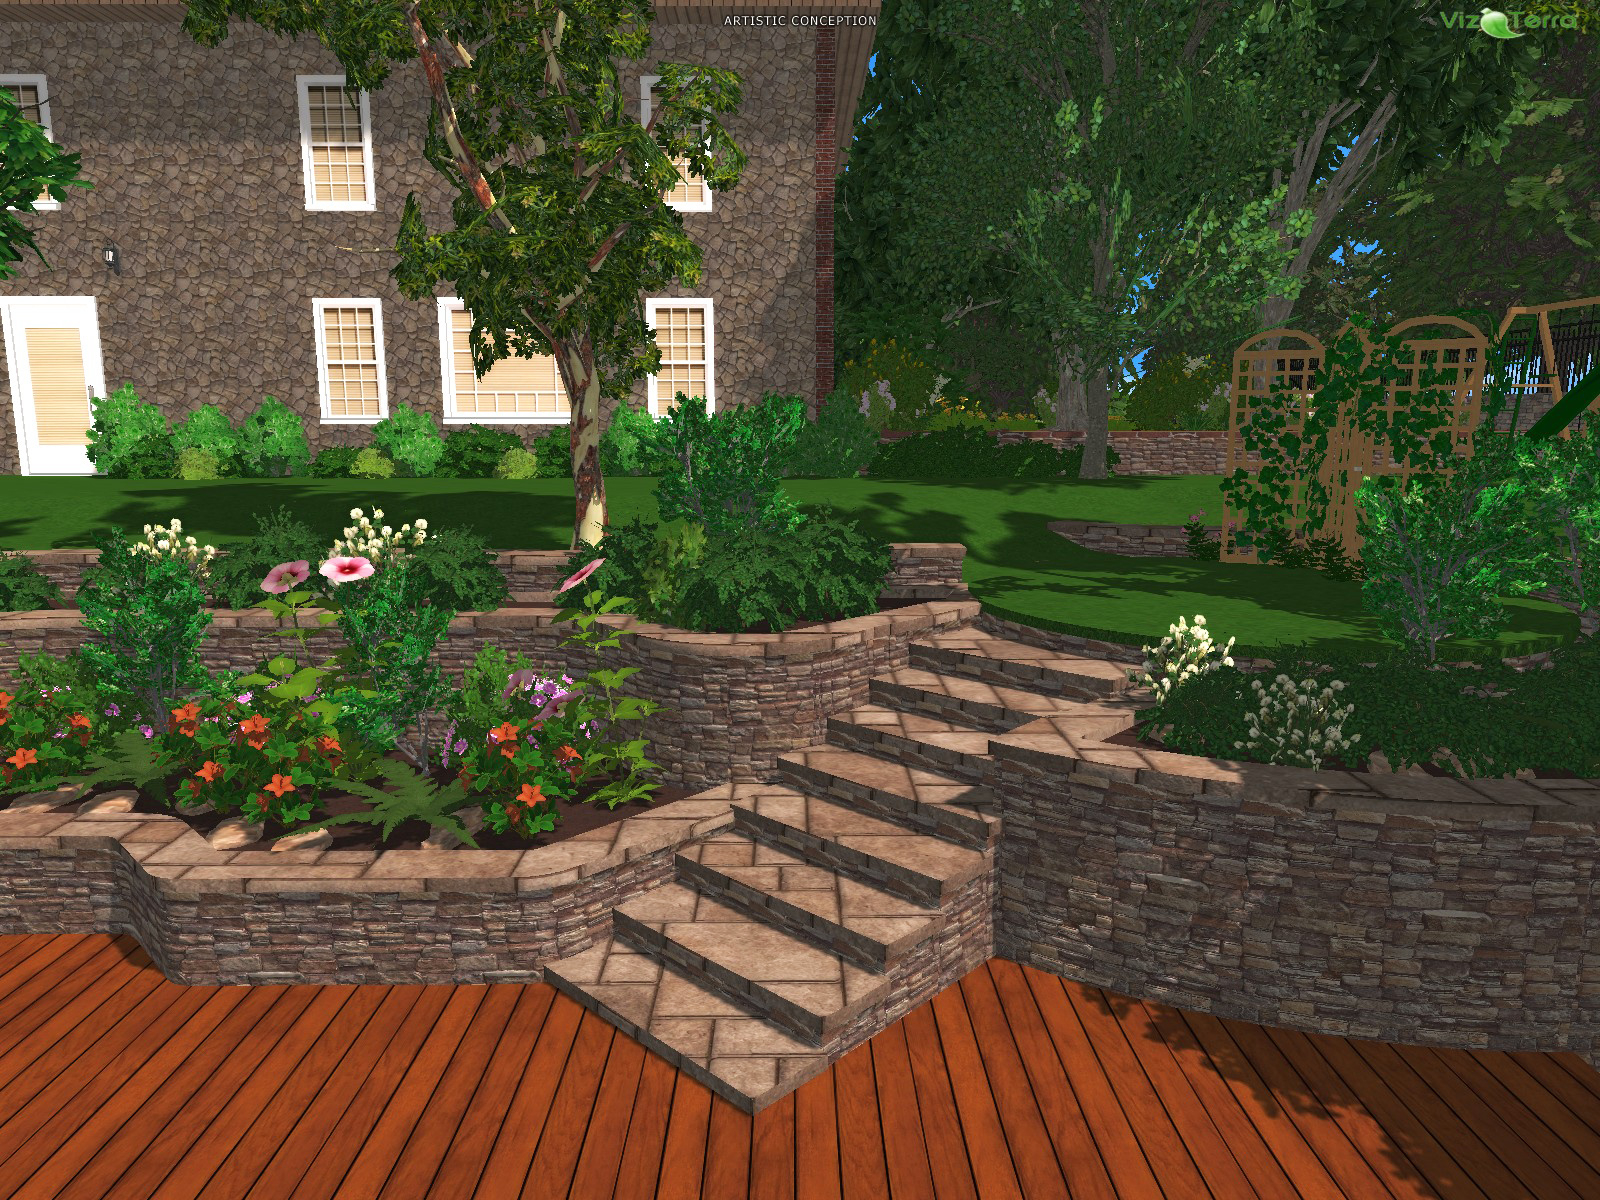 3d Landscape Design Software Landscape Ideas in Backyard Landscape Design Software Free